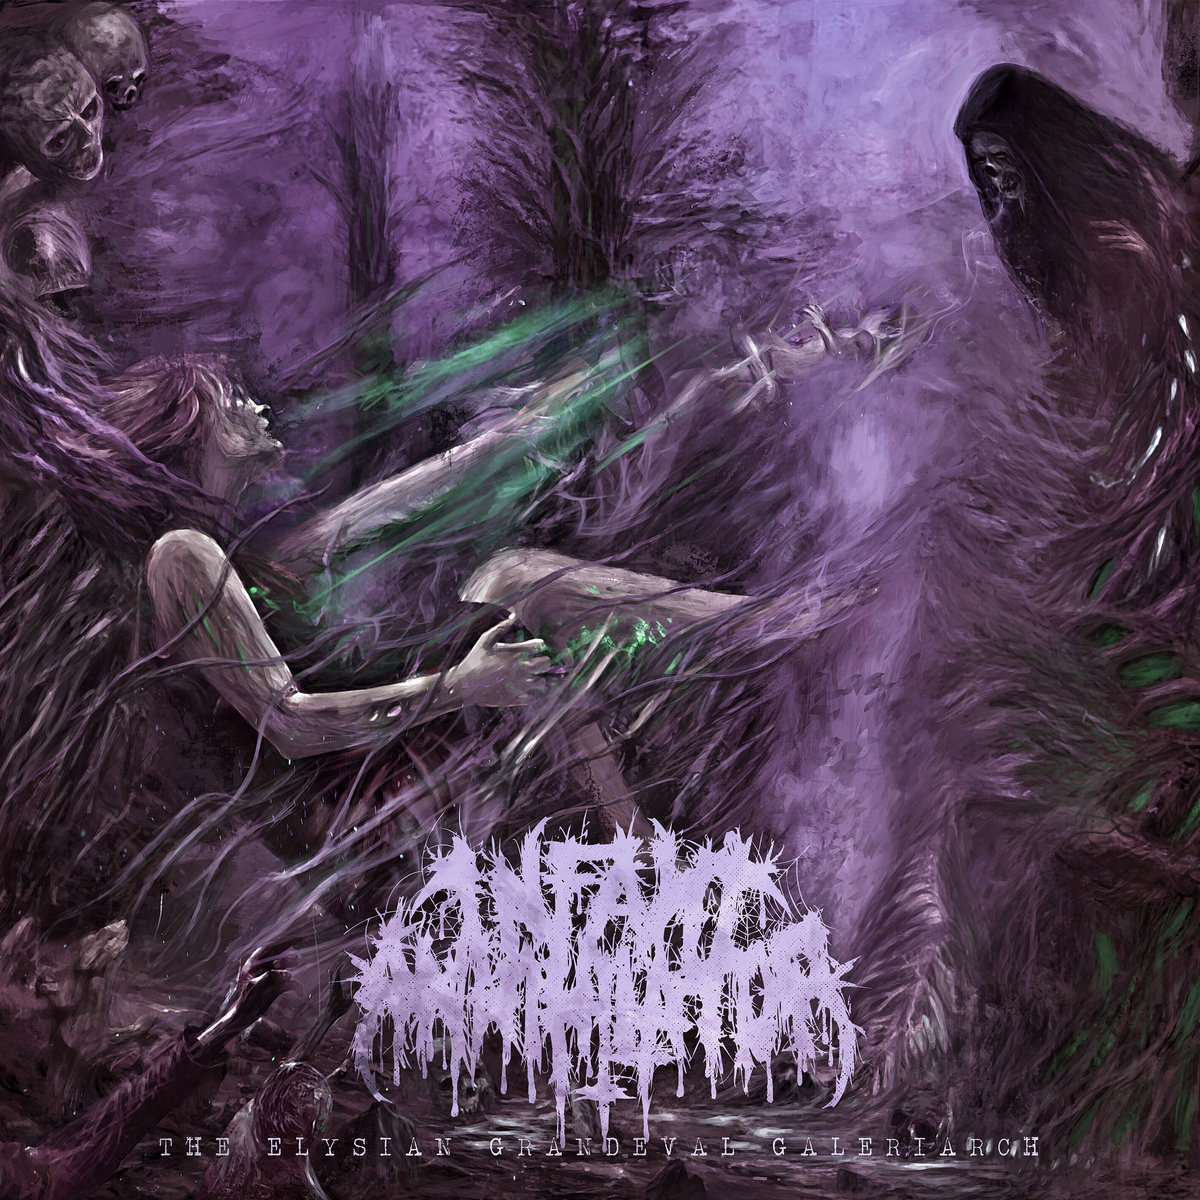 Infant Annihilator - The Elysian Grandeval Galeriarch